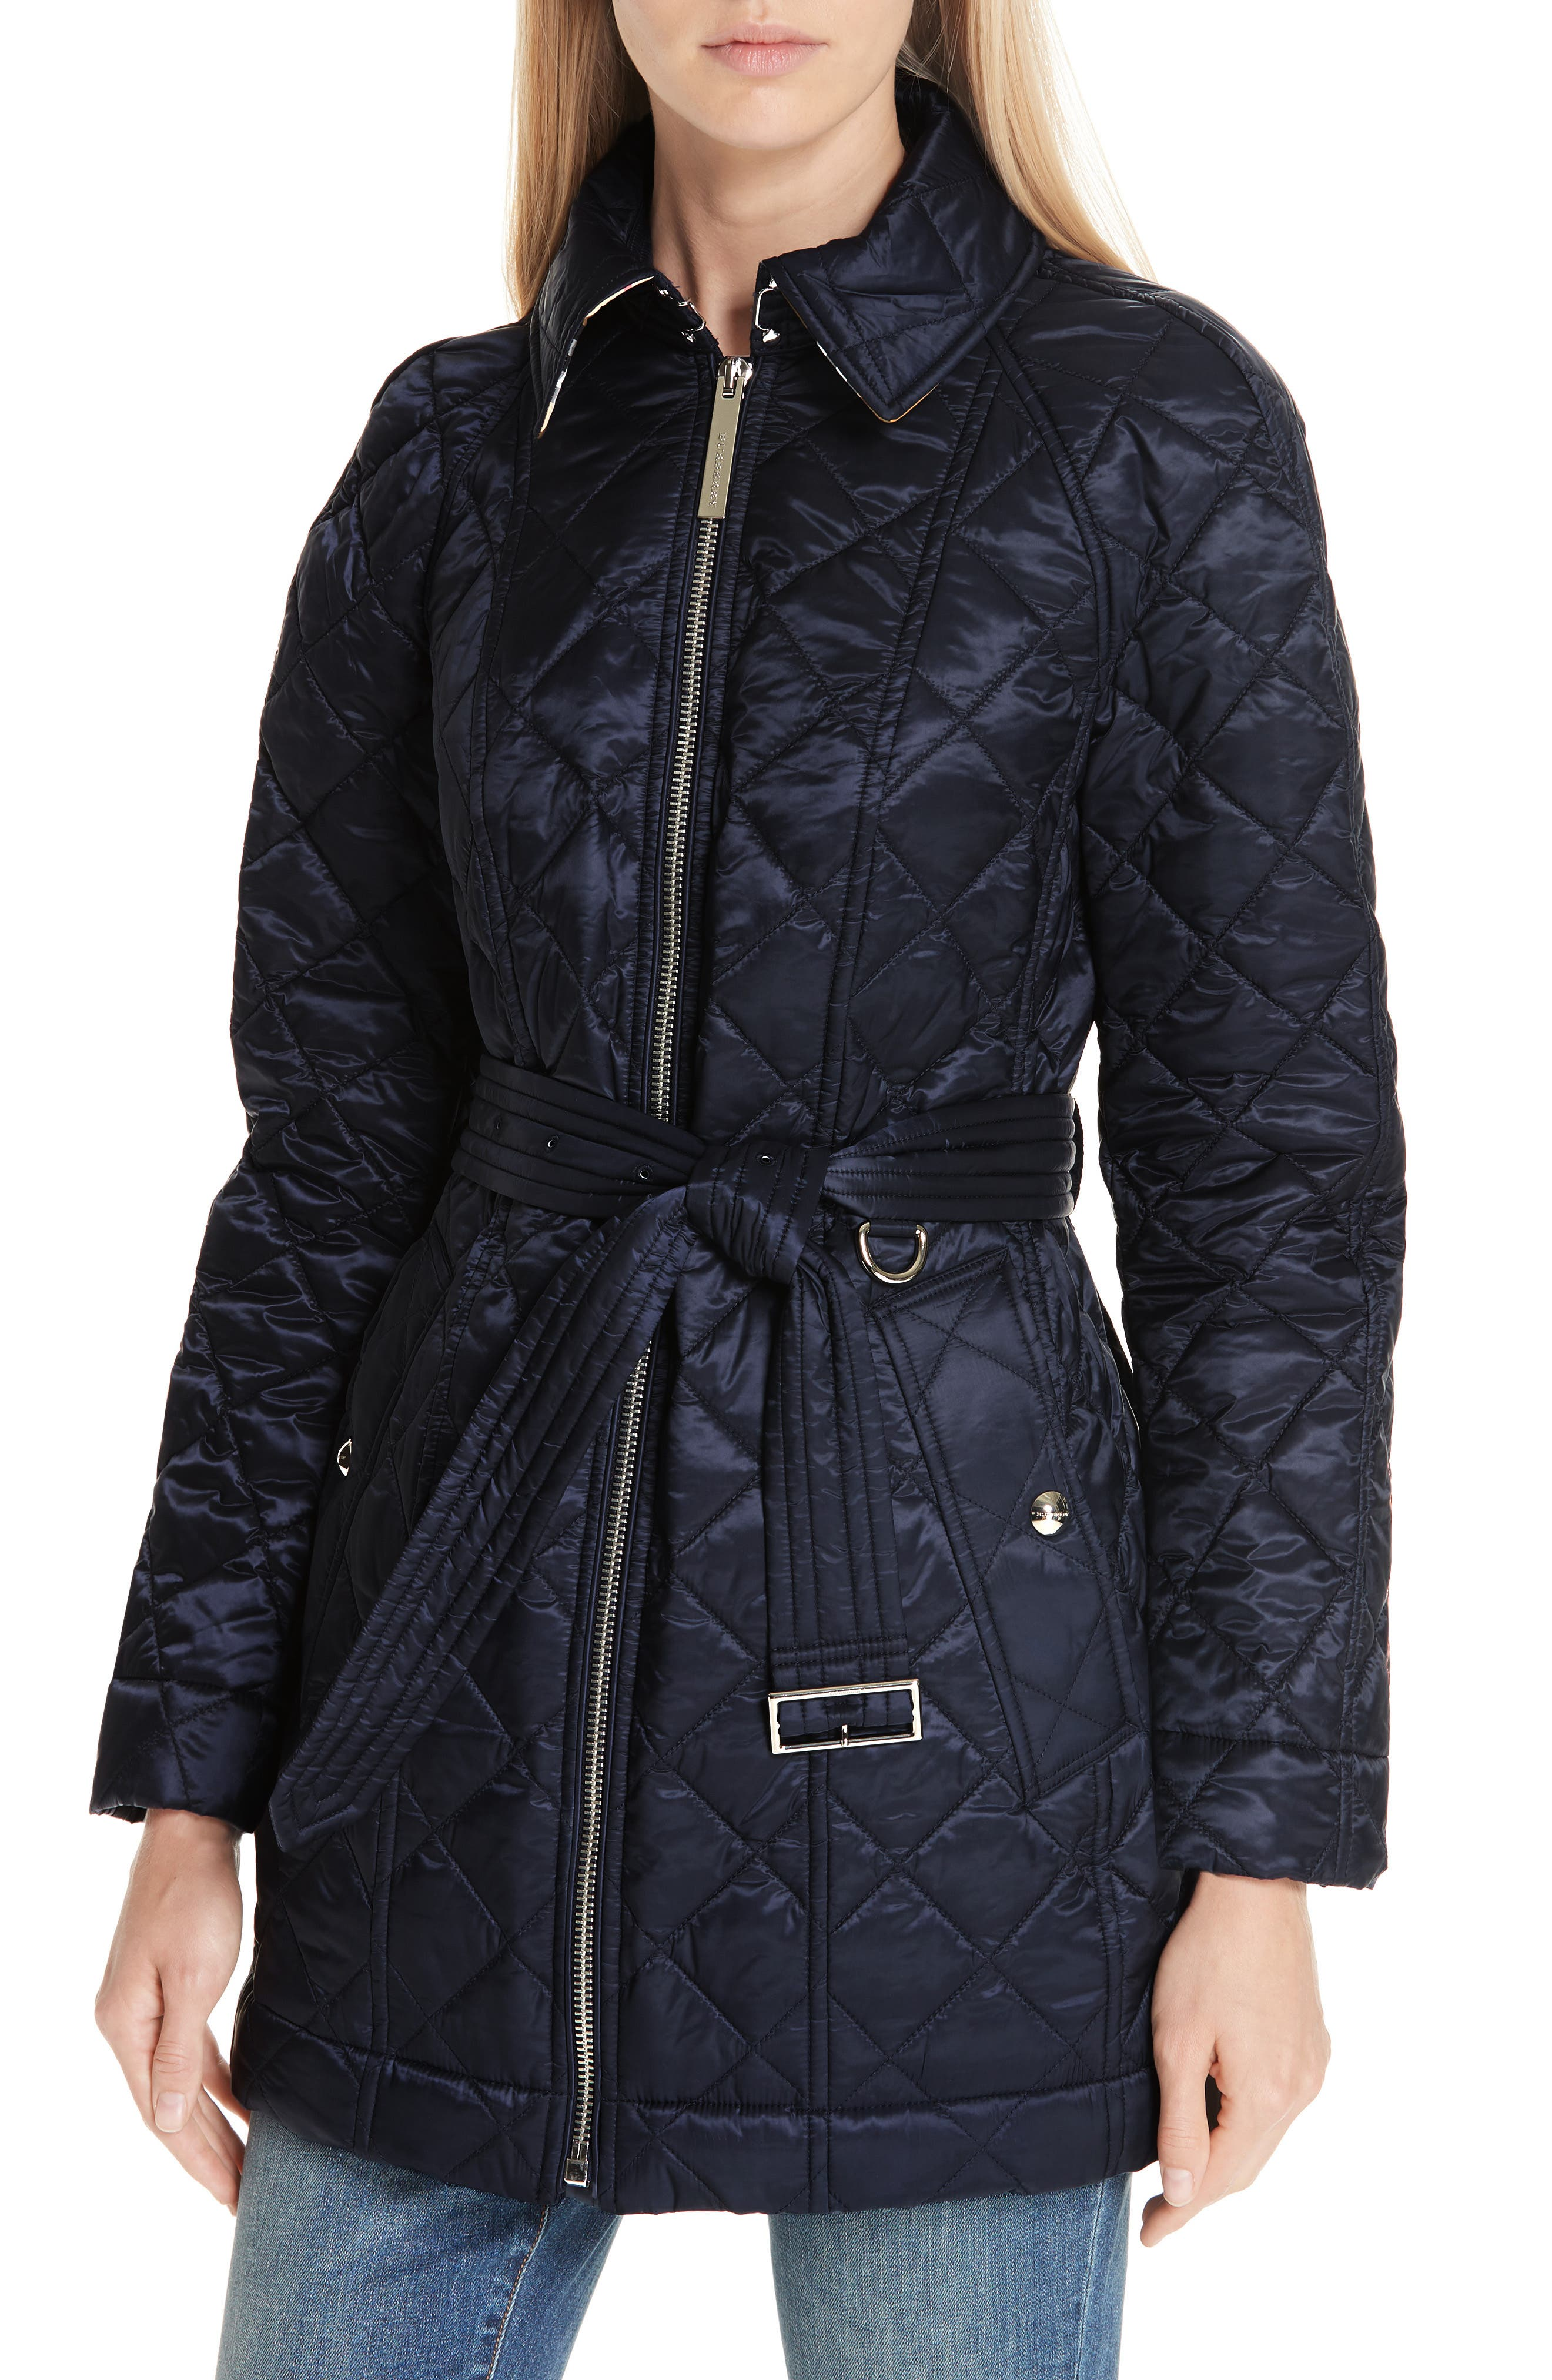 Baughton 18 Quilted Coat,                             Alternate thumbnail 4, color,                             412